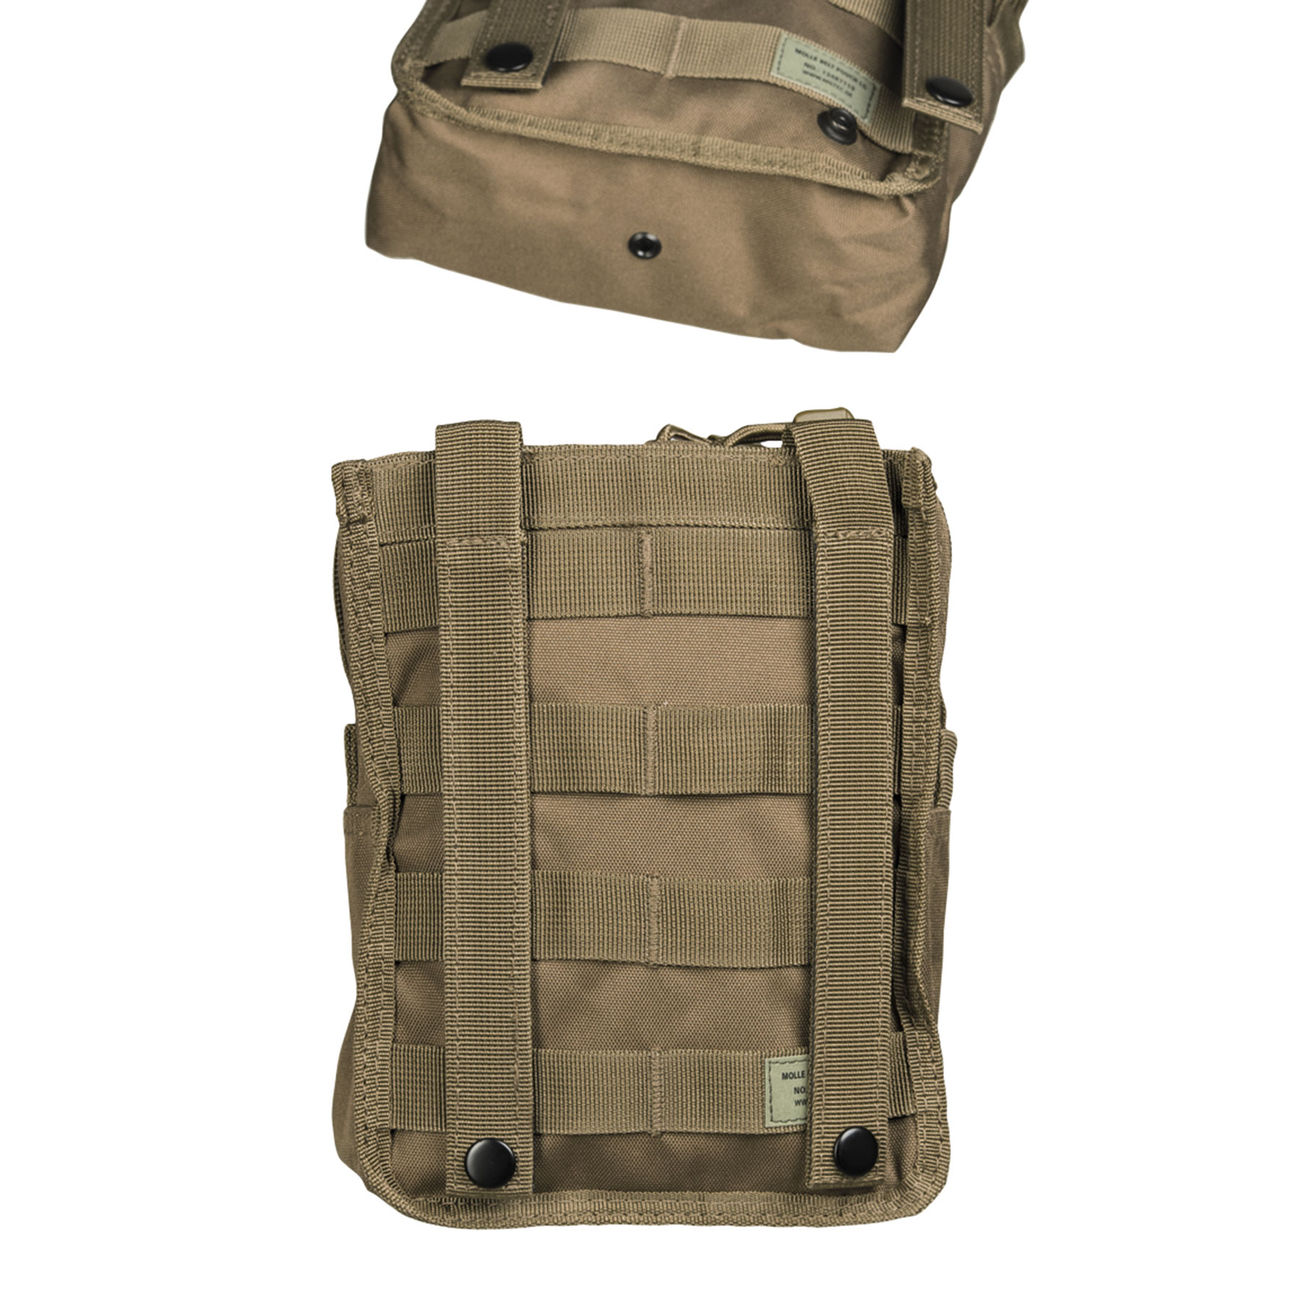 Mil-Tec Molle Belt Pouch LG Dark Coyote 1